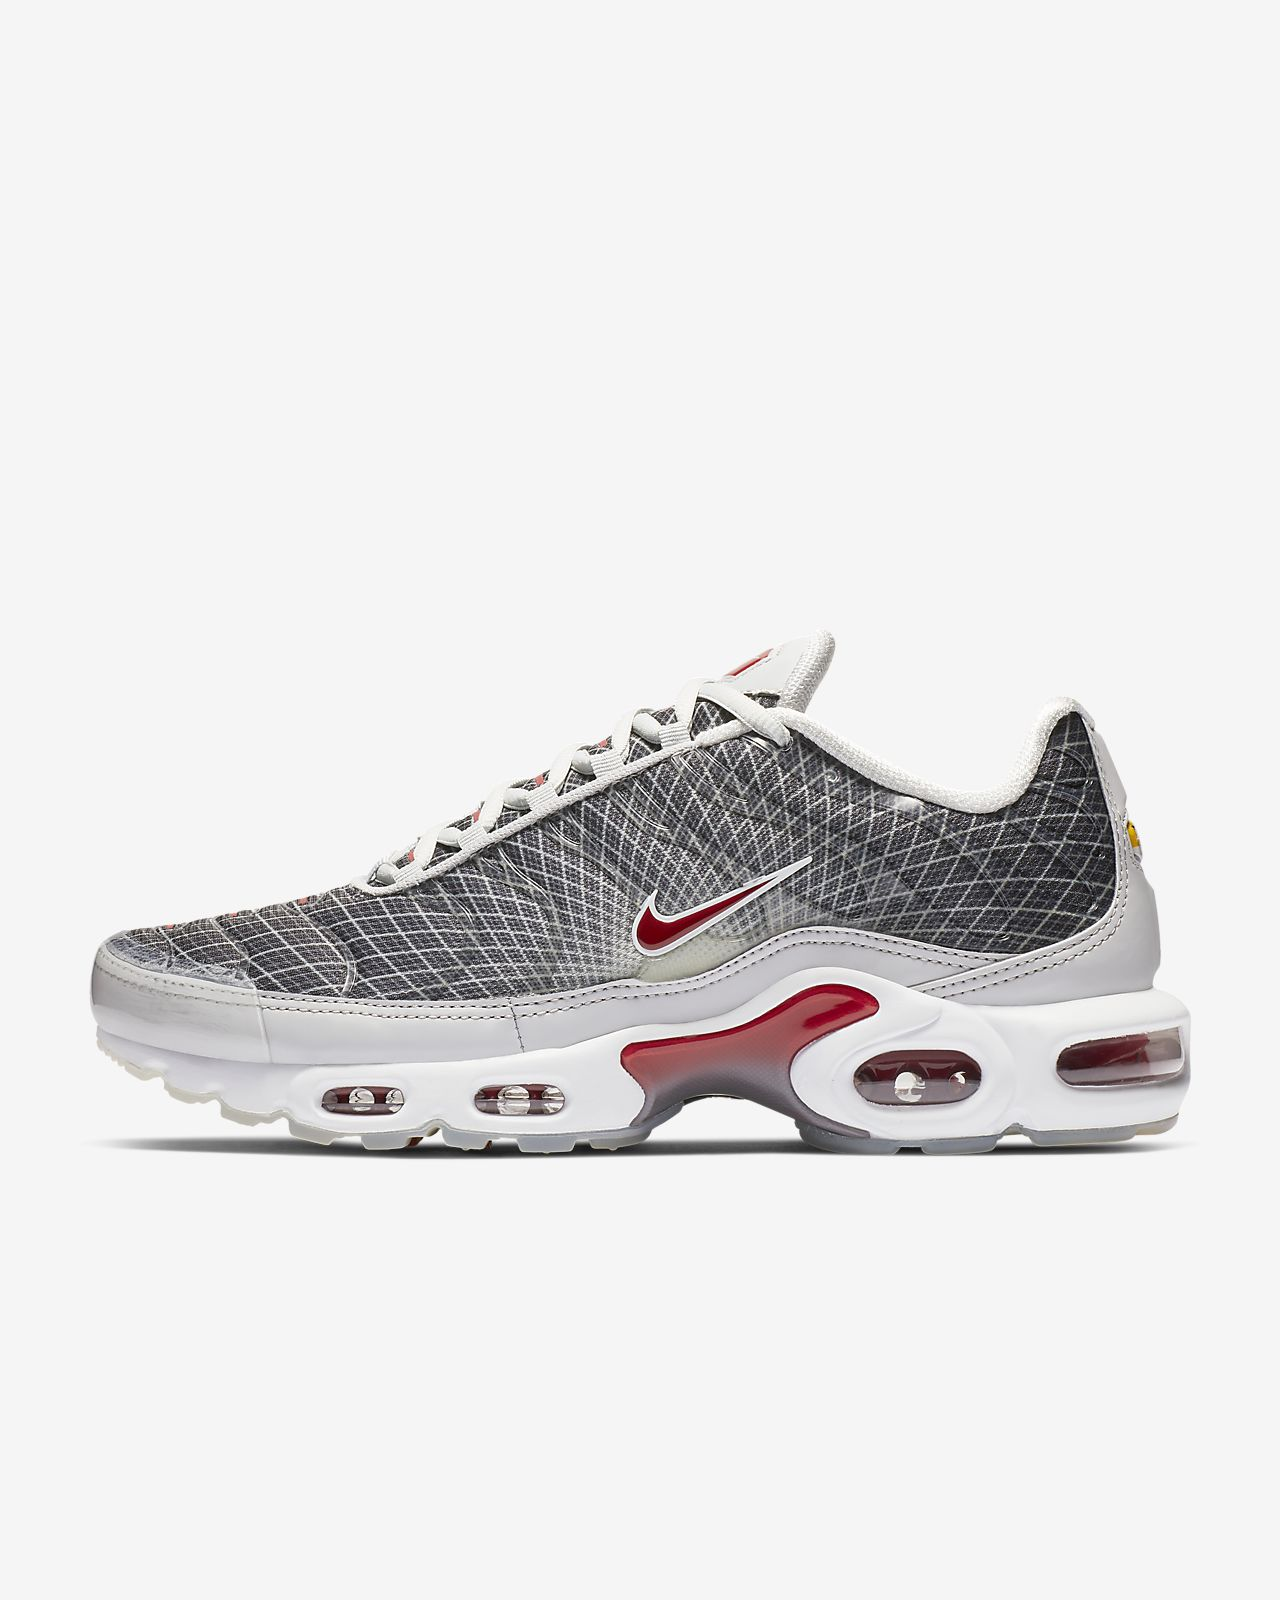 the latest 5ee8a 964fc ... Nike Air Max Plus OG Zapatillas